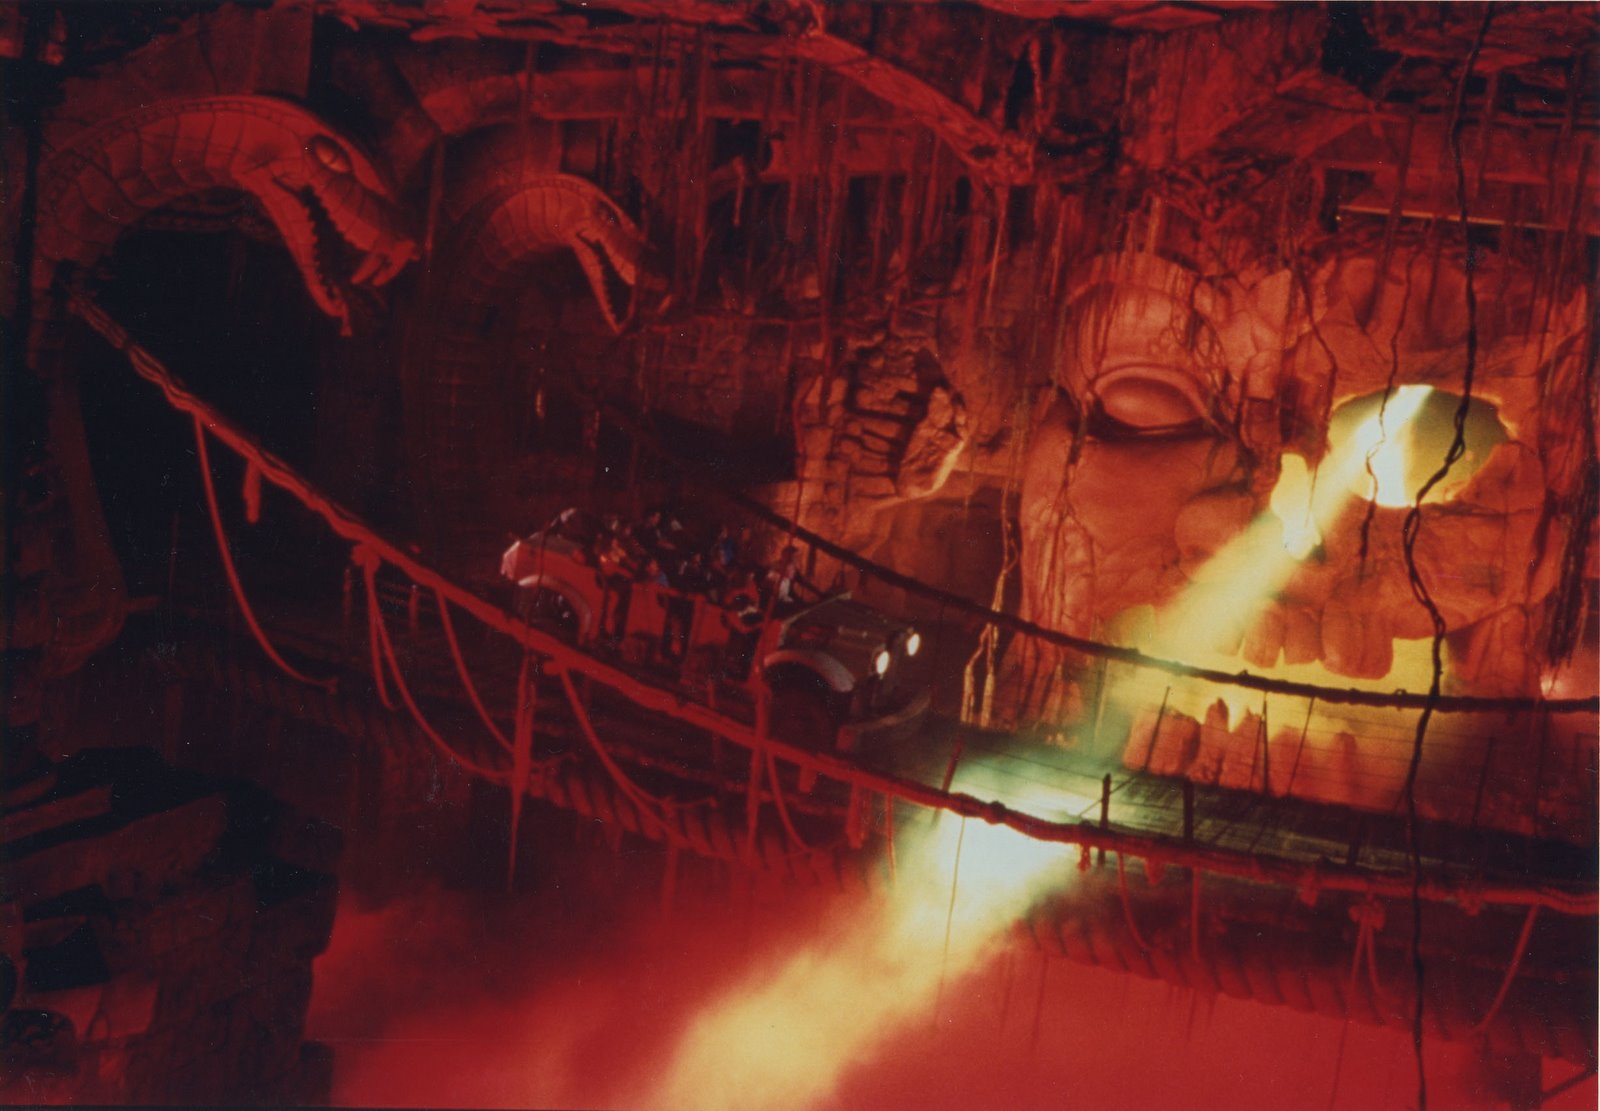 Indiana Jones Adventure ride (courtesy of wdwmagic.com)